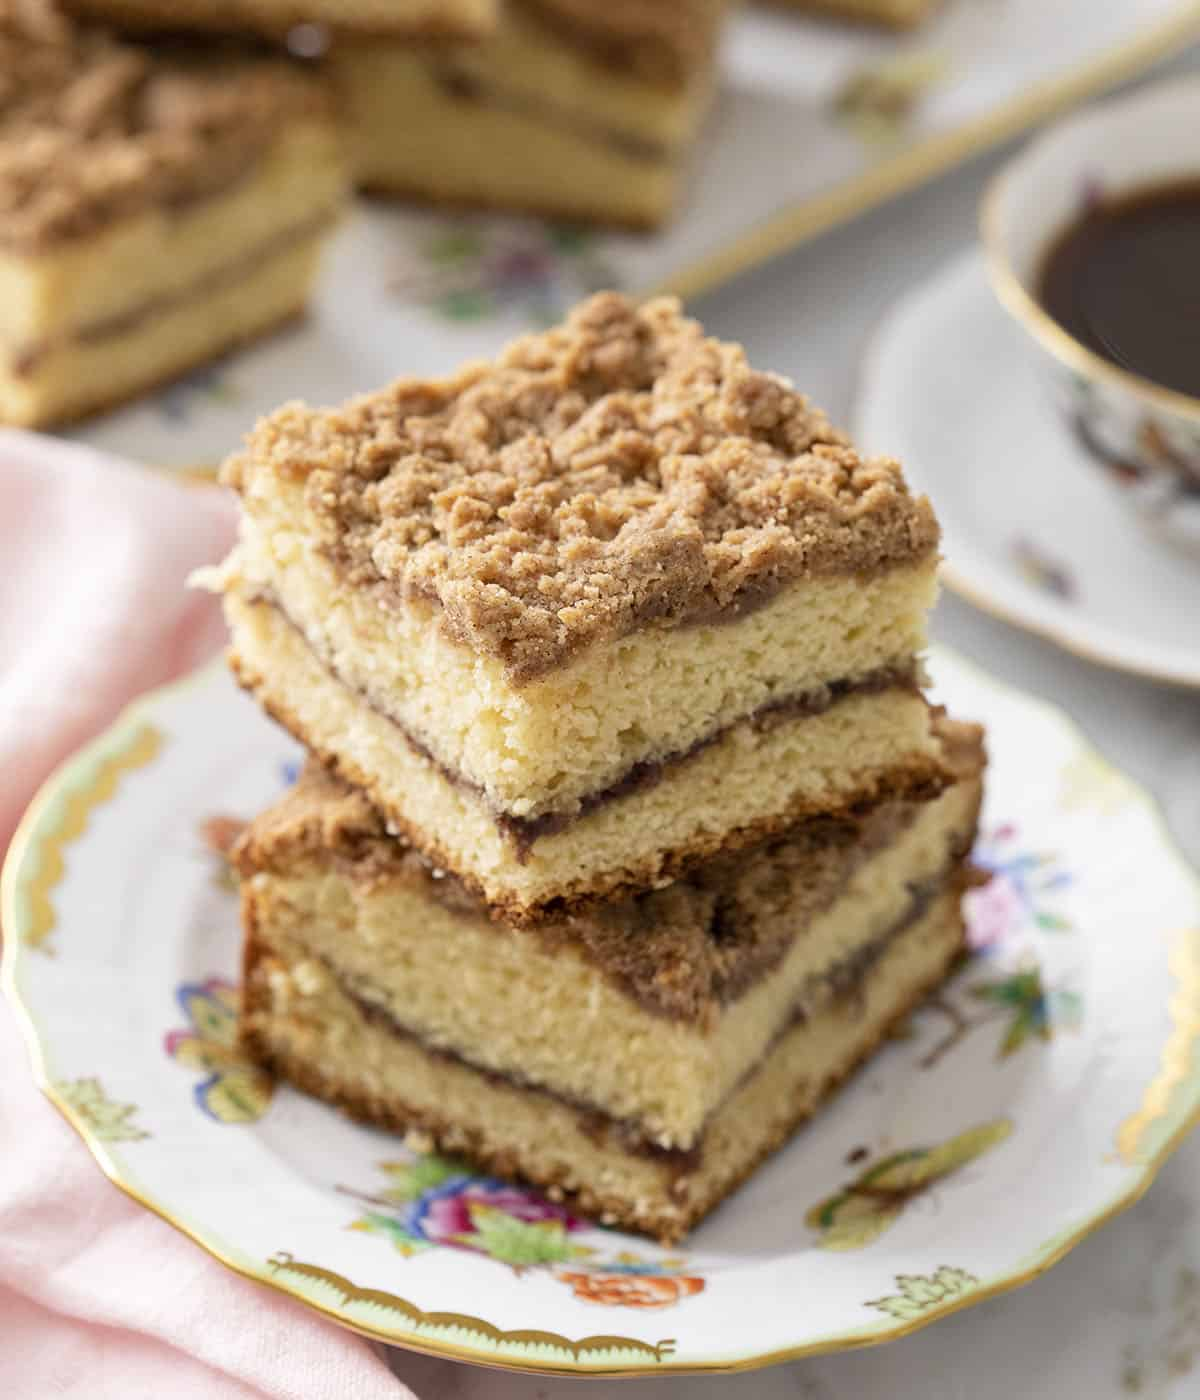 Two pieces of coffee cake with streusel topping on a plate.